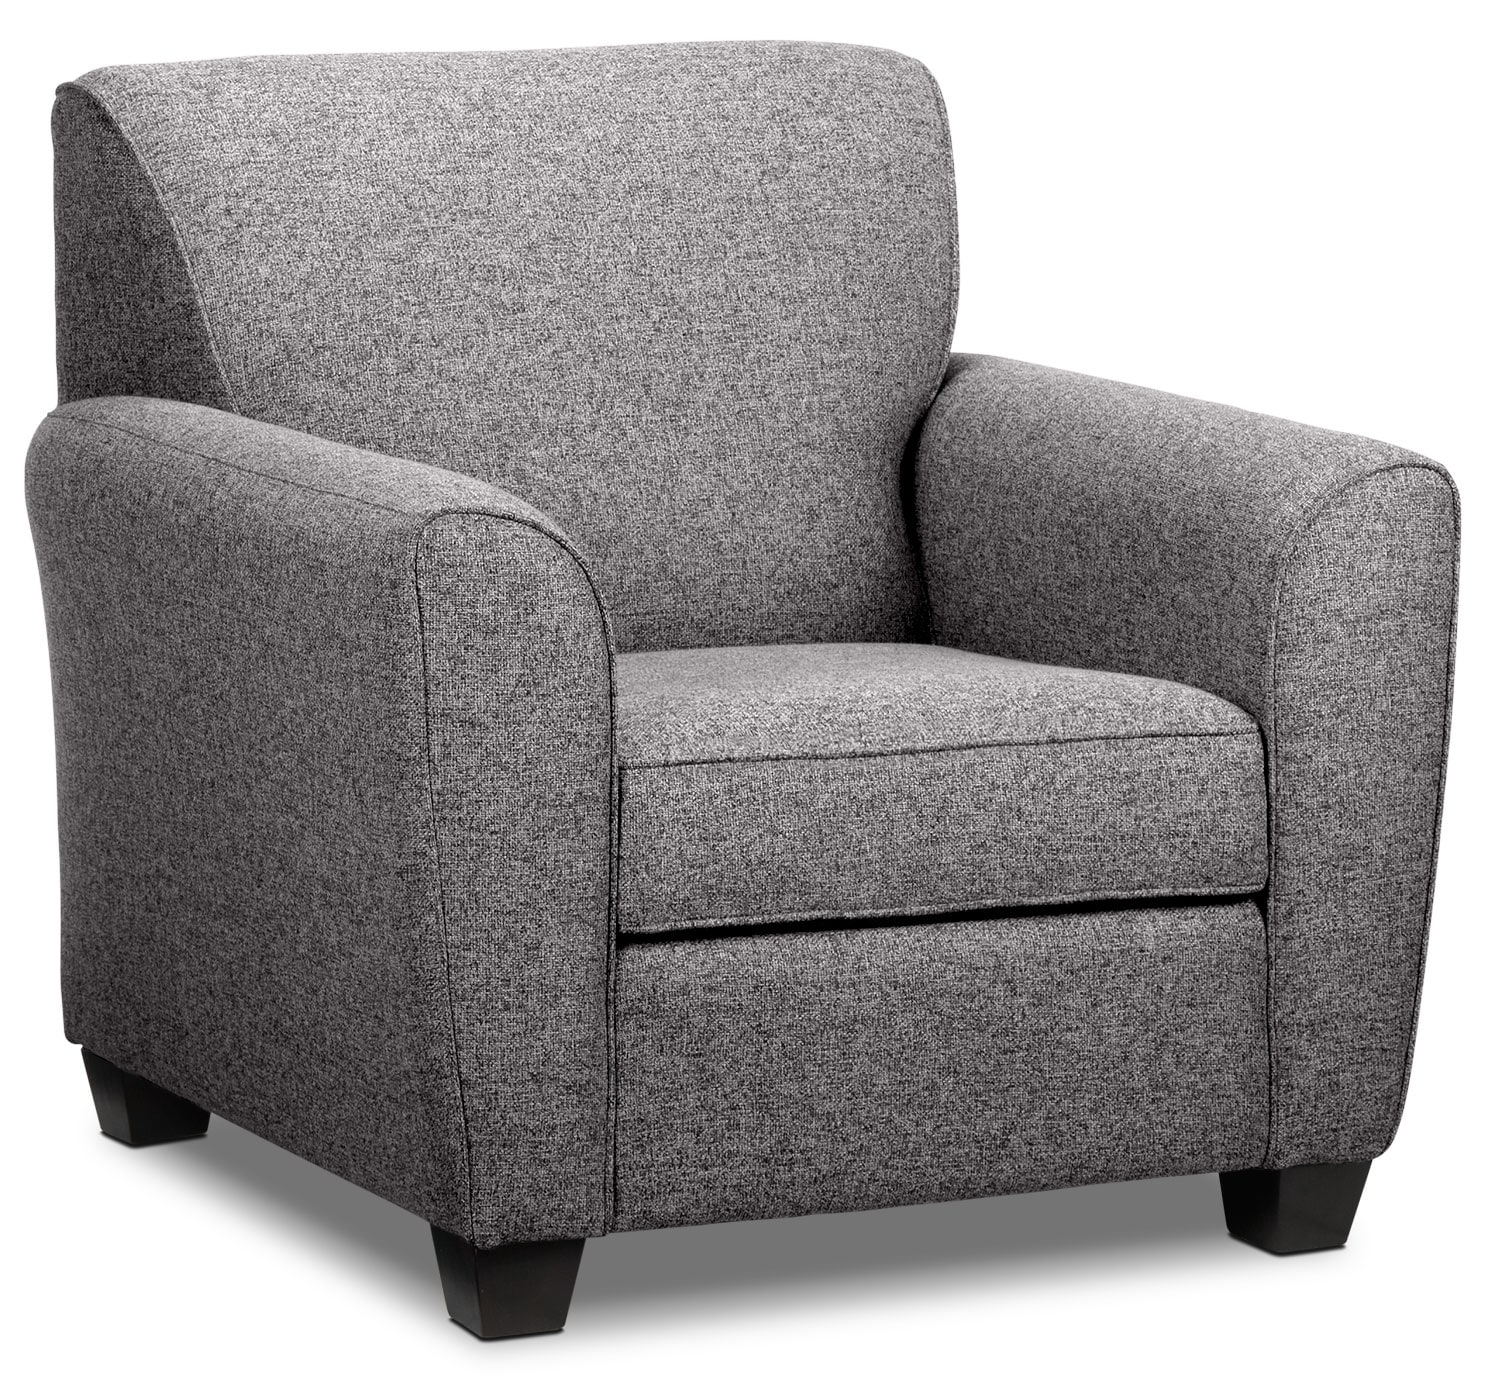 Living Room Furniture - Ashby Chair - Oreo